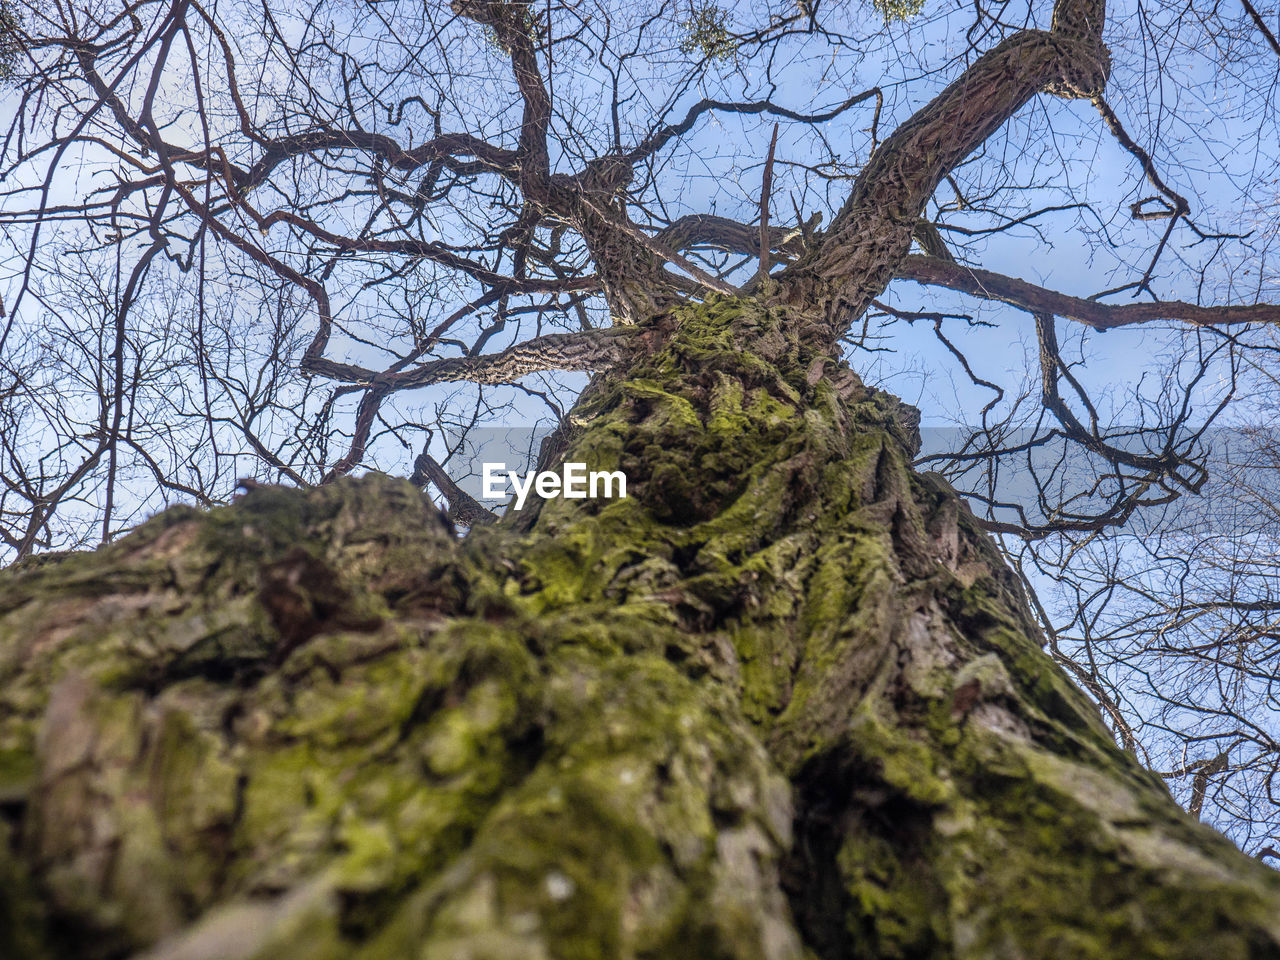 tree, low angle view, plant, bare tree, branch, moss, no people, nature, sky, tree trunk, trunk, selective focus, day, outdoors, tranquility, growth, land, clear sky, beauty in nature, textured, bark, directly below